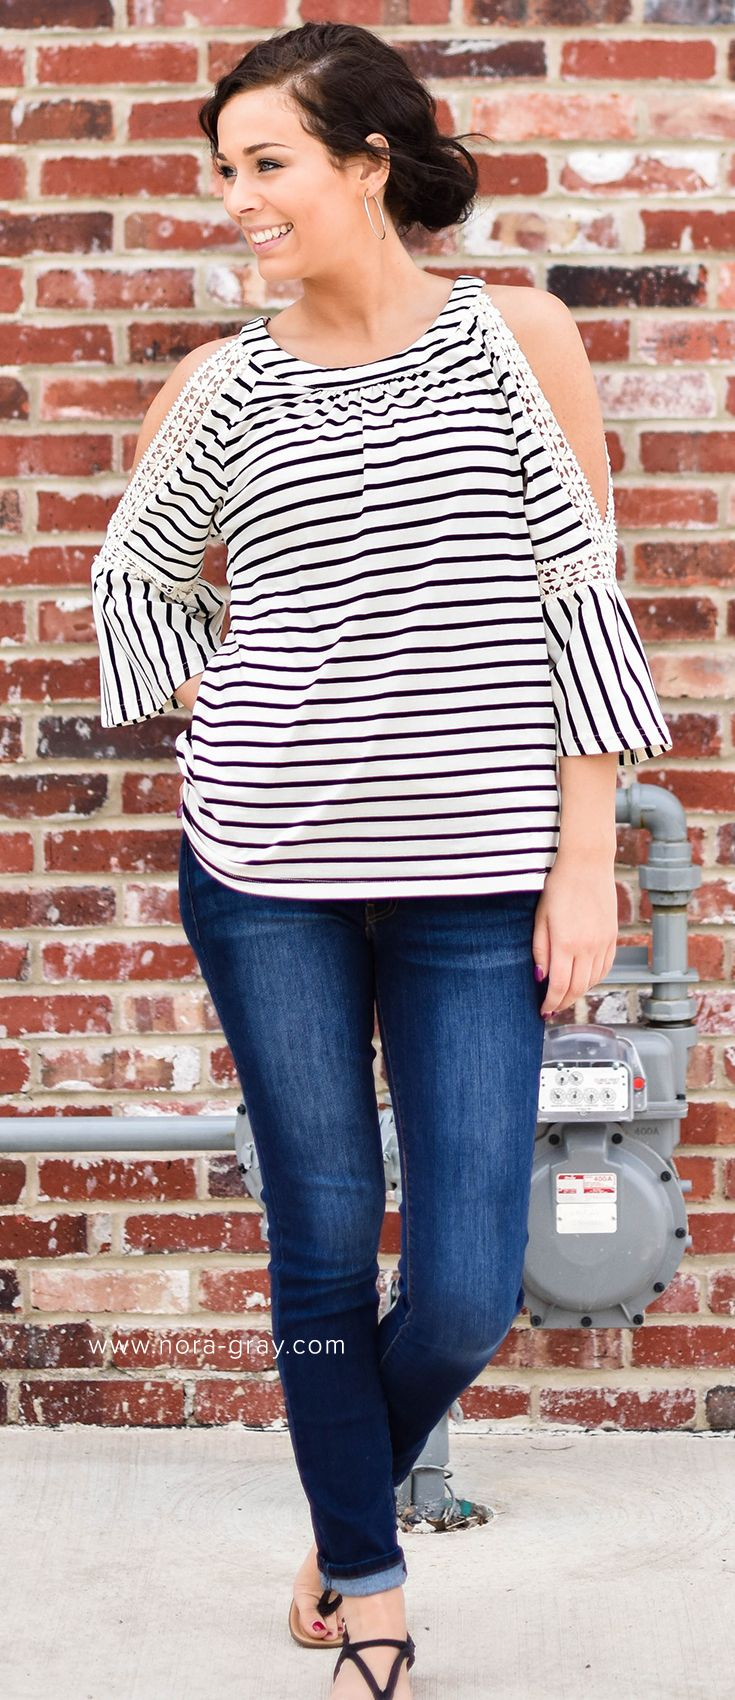 Get the Pearl Open Shoulder Top now at Nora Gray Boutique located in Berne, Indiana or online at www.nora-gray.com. All orders online receive FREE SHIPPING always! The Pearl is the perfect boutique top featuring fun stripes and lace shoulders. Download Nora Gray Boutique in your App Store to keep up with new arrivals, new deals and more!